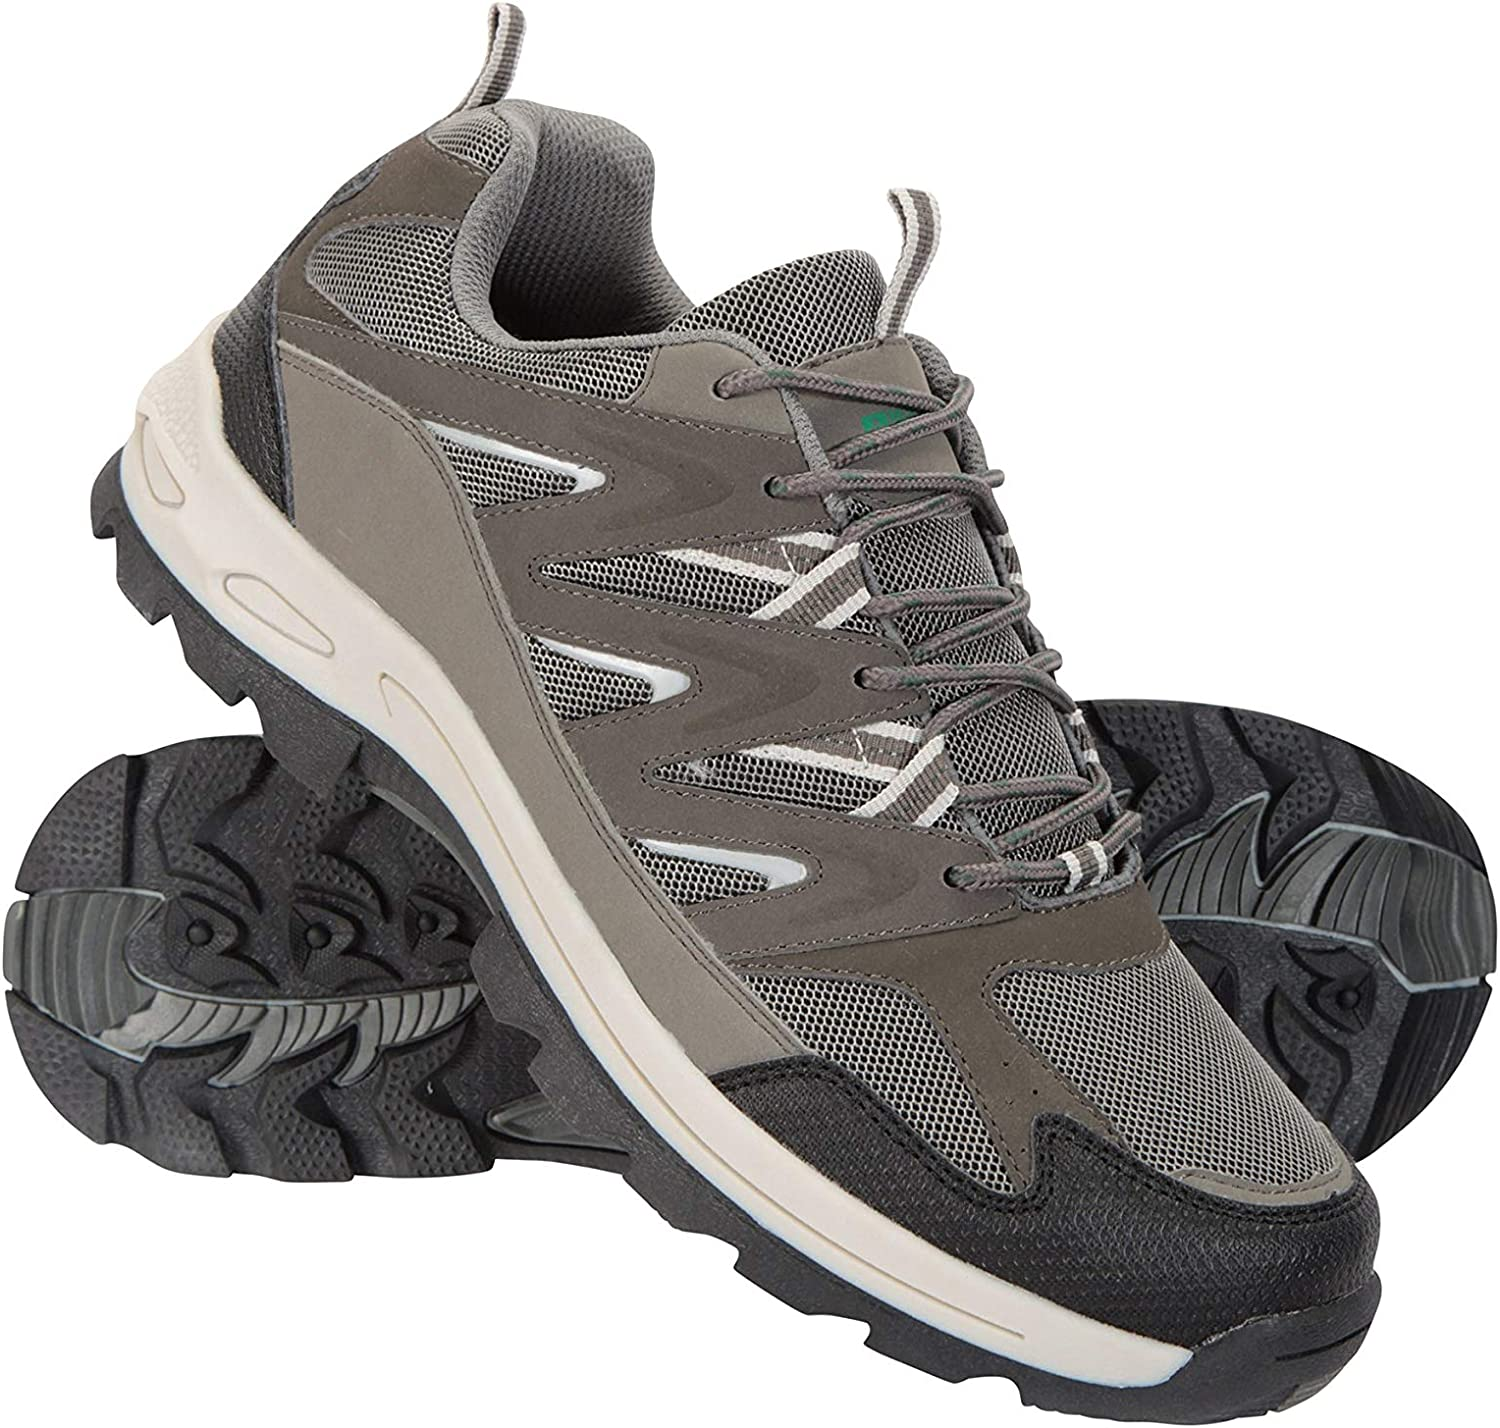 Lightweight Footwear Cushioned Footbed Waterproof Upper High Traction Outsole Mountain Warehouse Ramble Mens Softshell Shoes Travelling Hiking Best for Walking